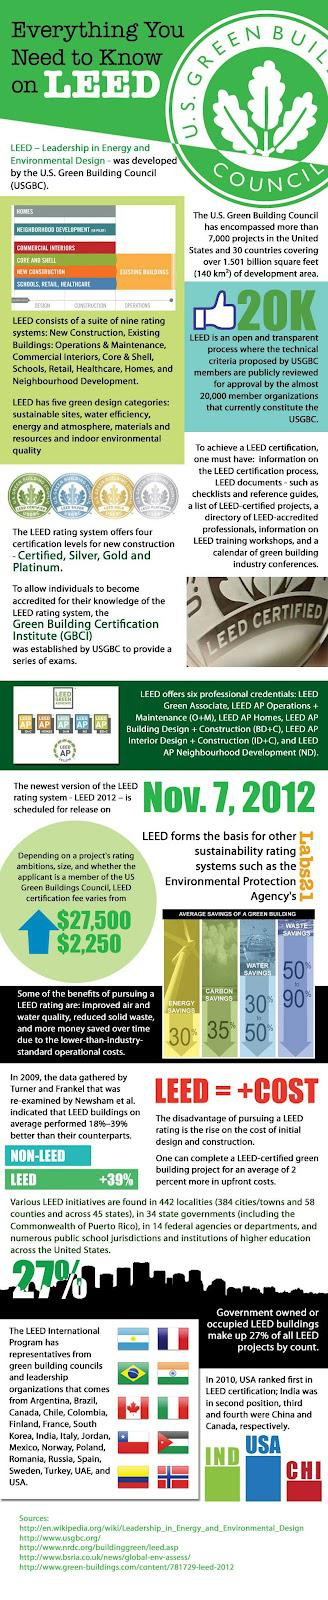 Everything You Need to Know About LEED